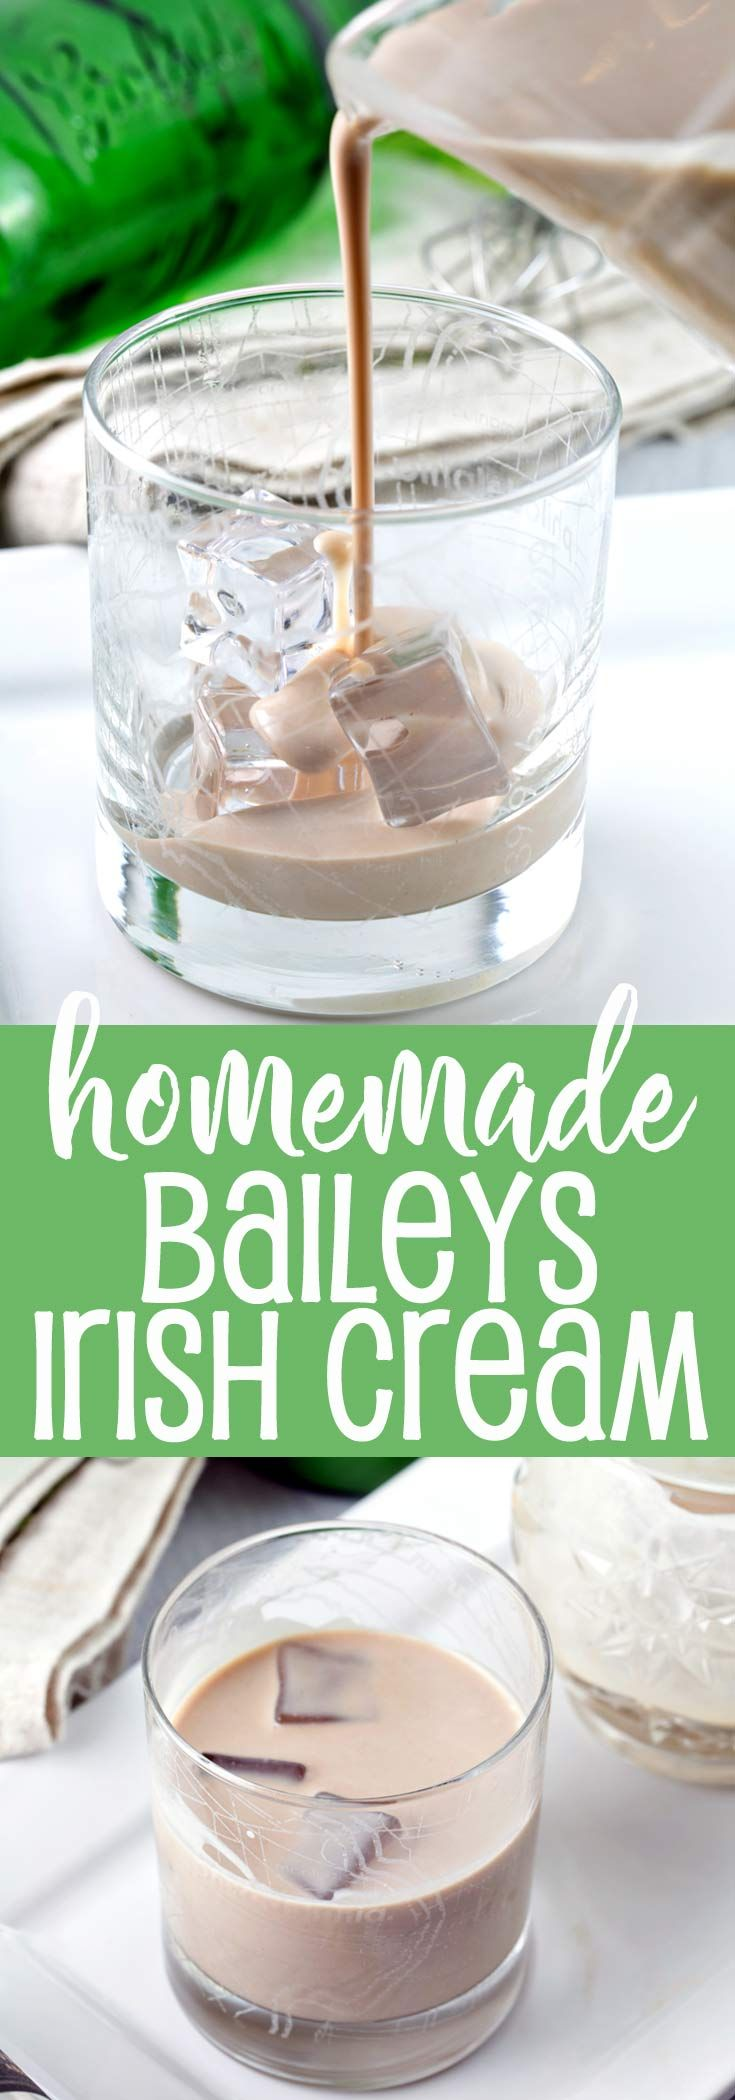 Homemade Irish Cream: quick to make and tastes like the real thing!  Customize flavors for sipping, adding to drinks, or boozy desserts. {Bunsen Burner Bakery} via @bnsnbrnrbakery